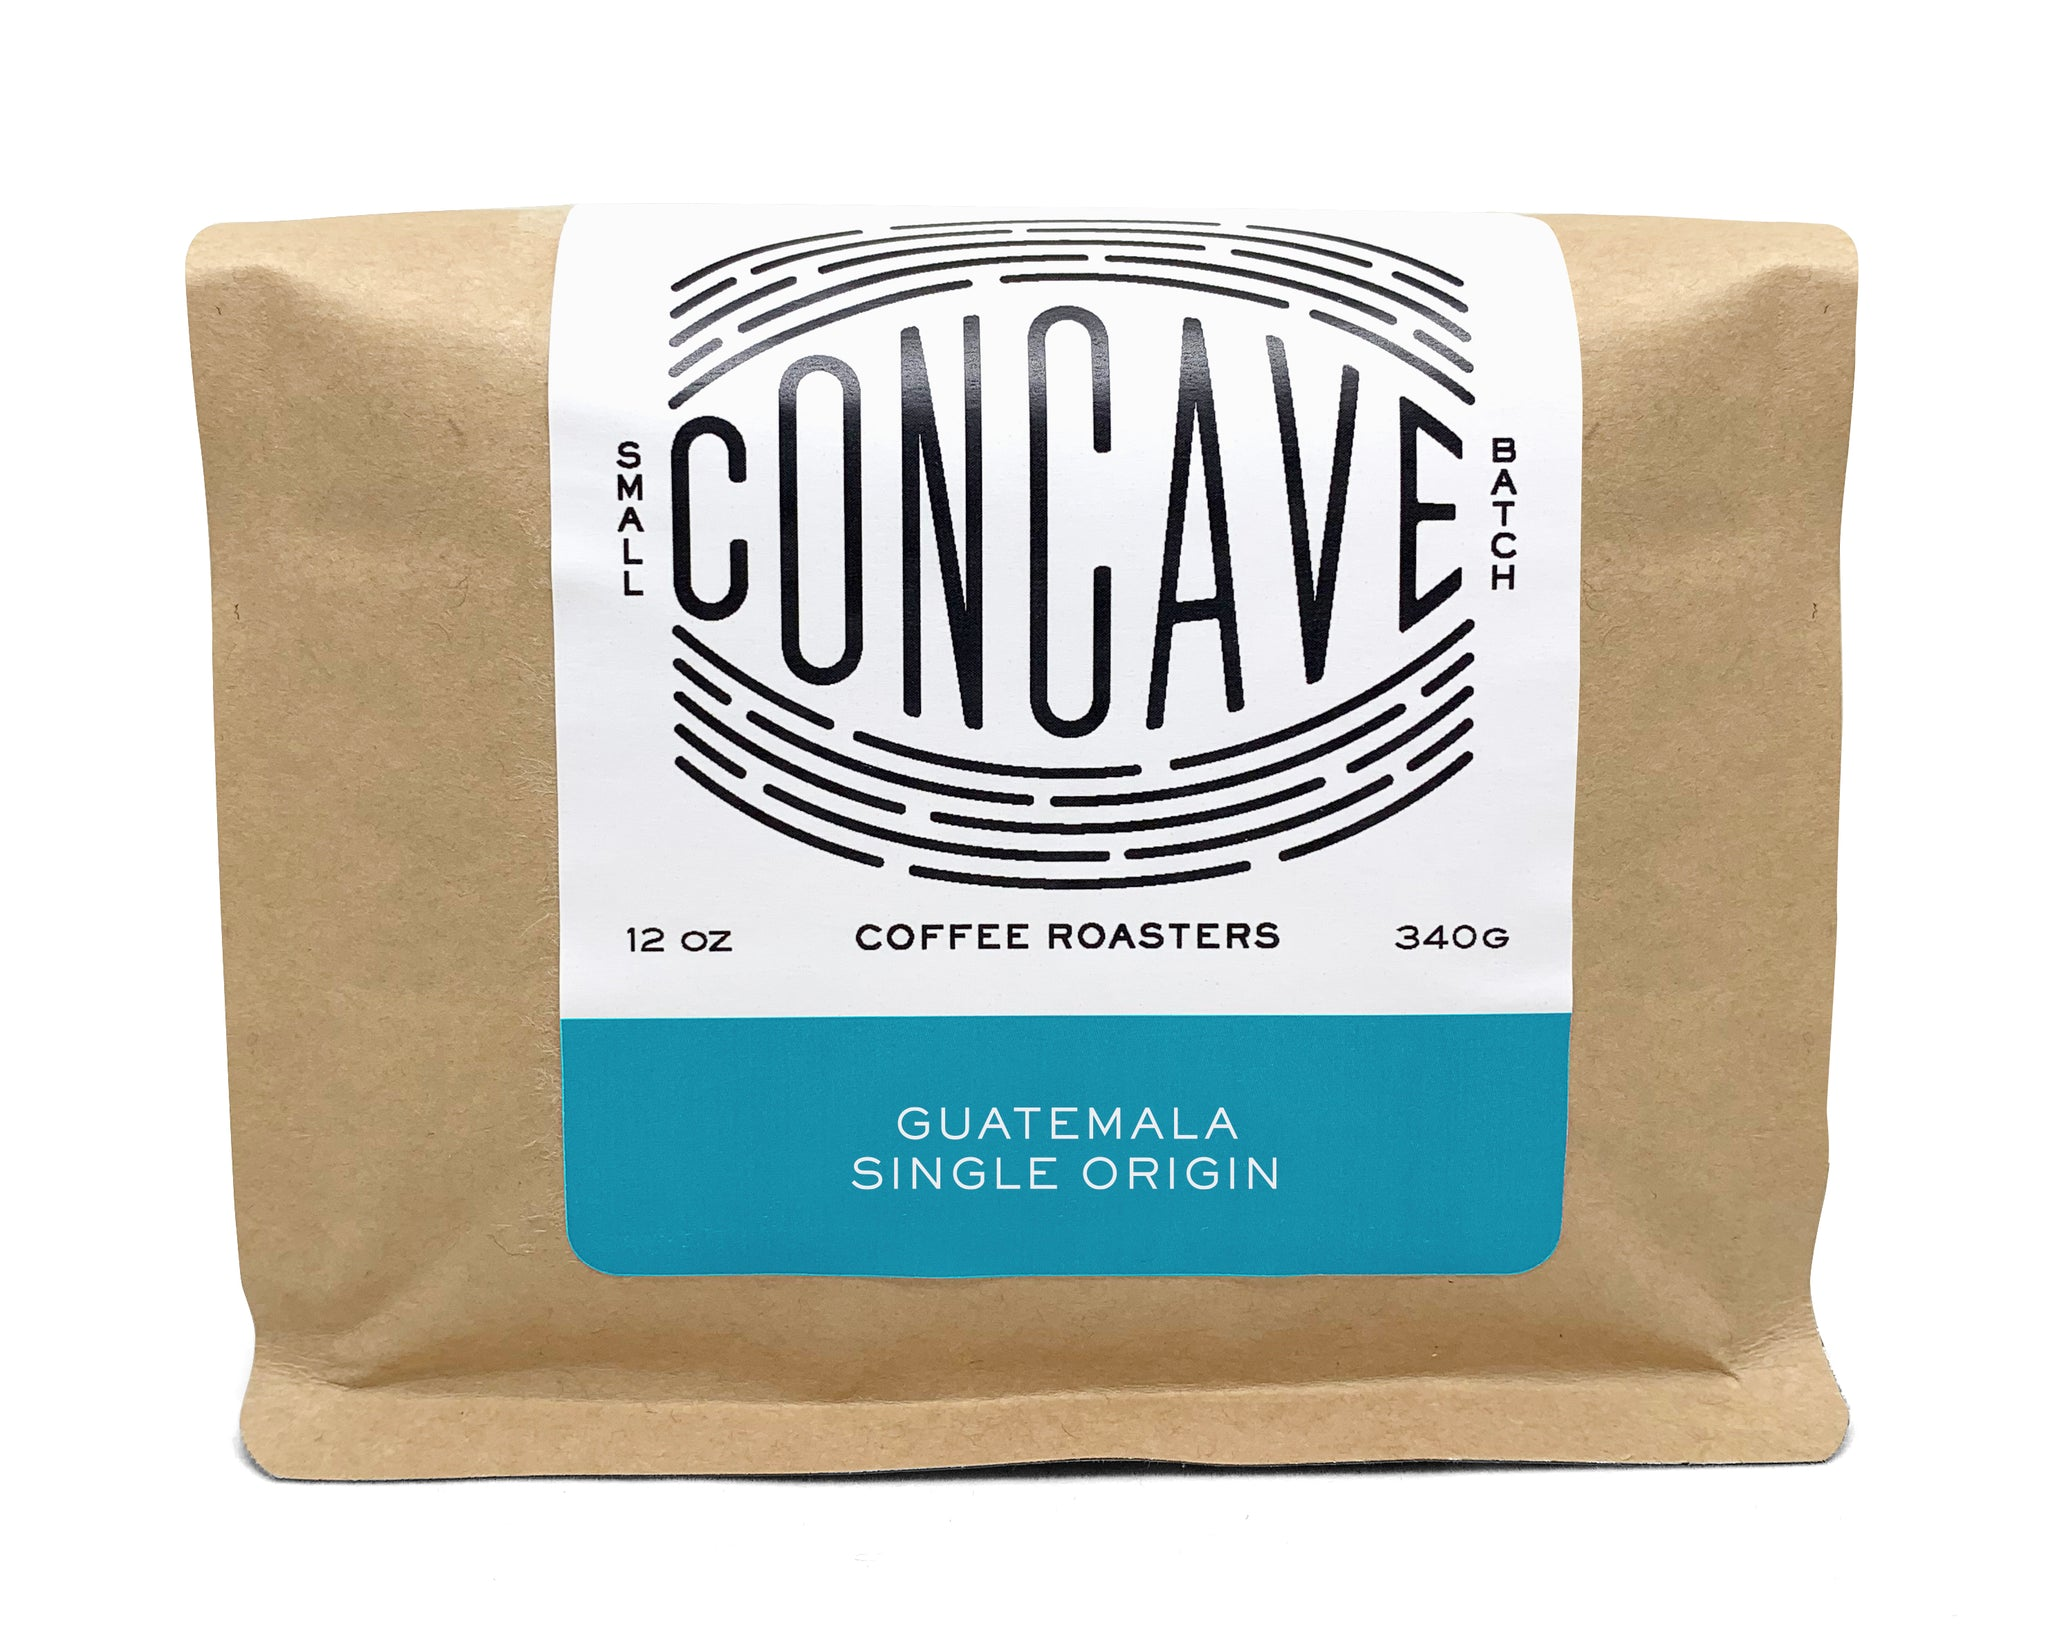 Guatemala | Concave Coffee Roasters | Dript Coffee Co.